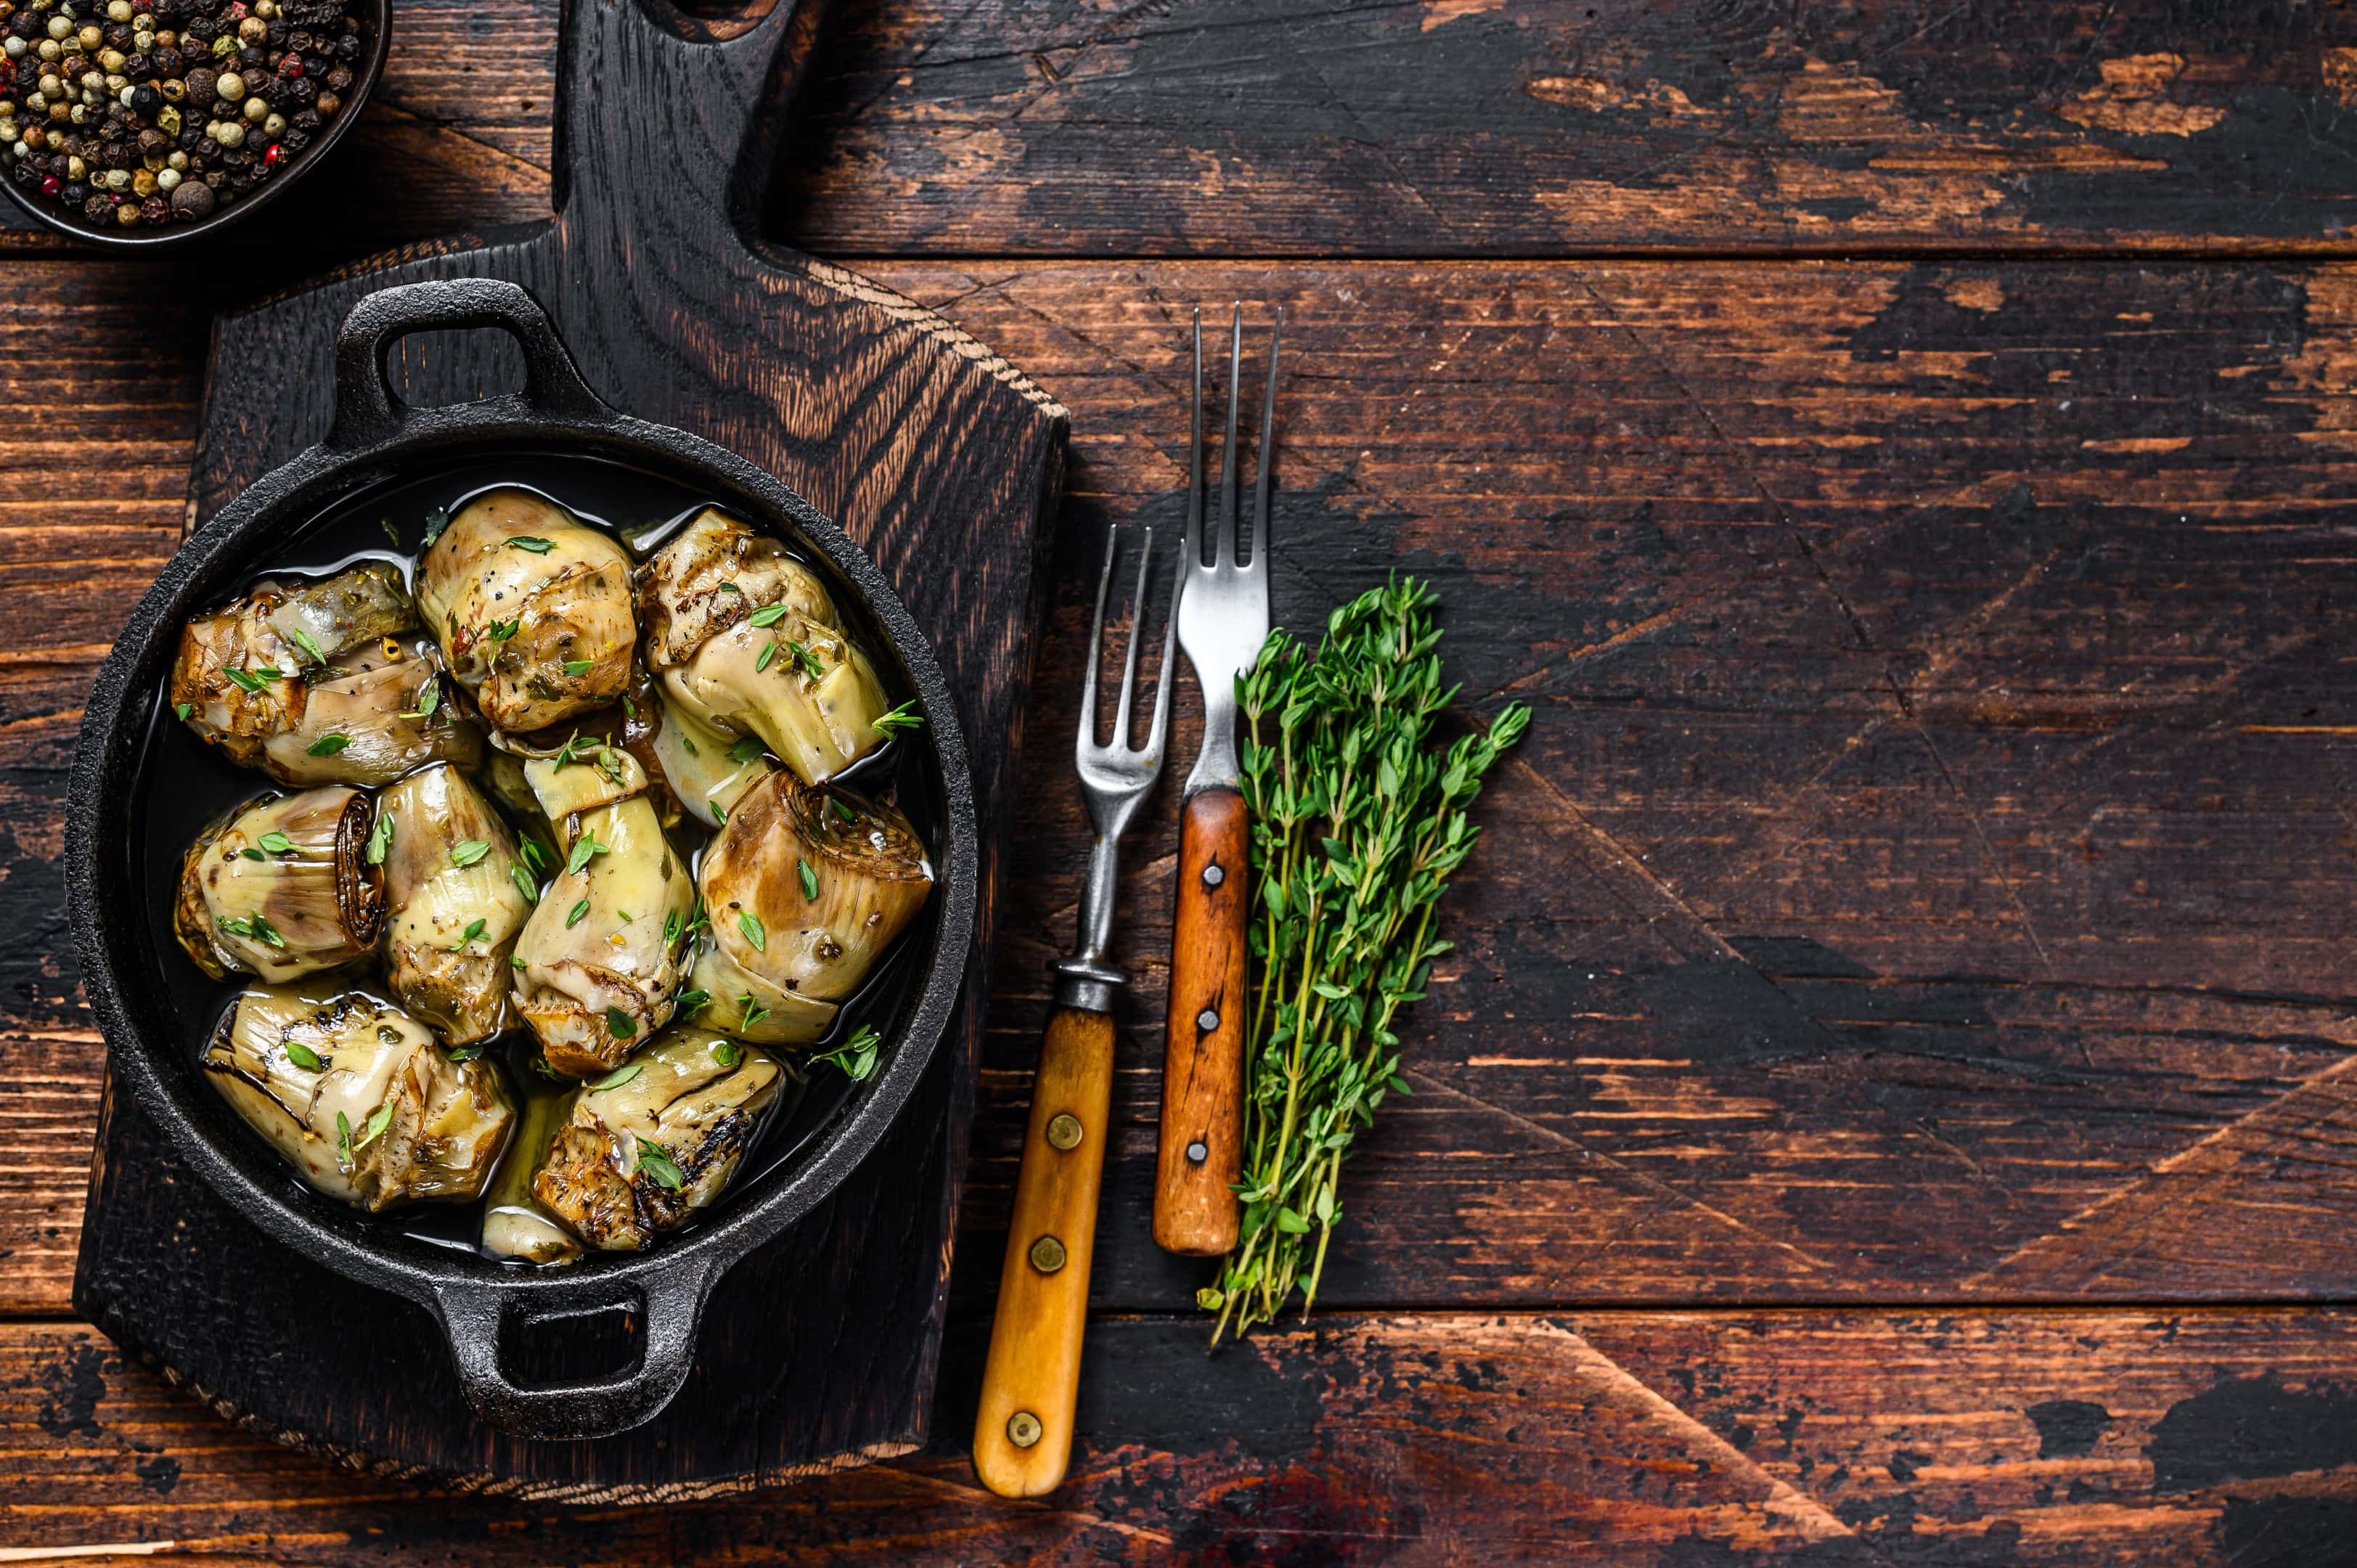 Artichokes marinated with champagne vinegar in pan on wooden table